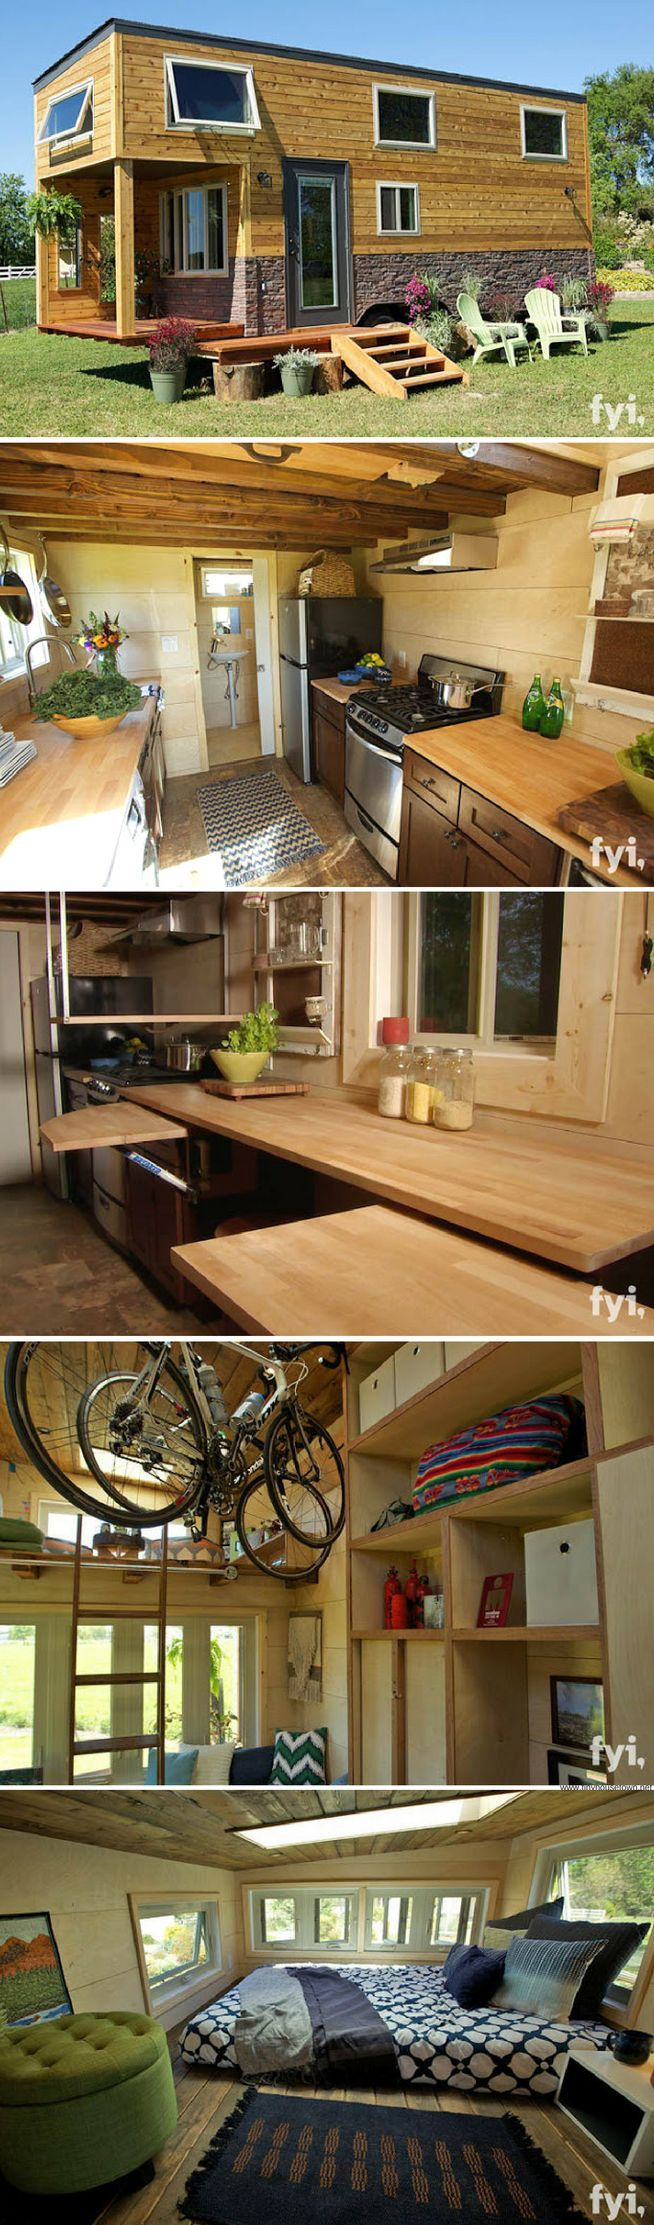 17 Best Images About Tiny House Interiors On Pinterest